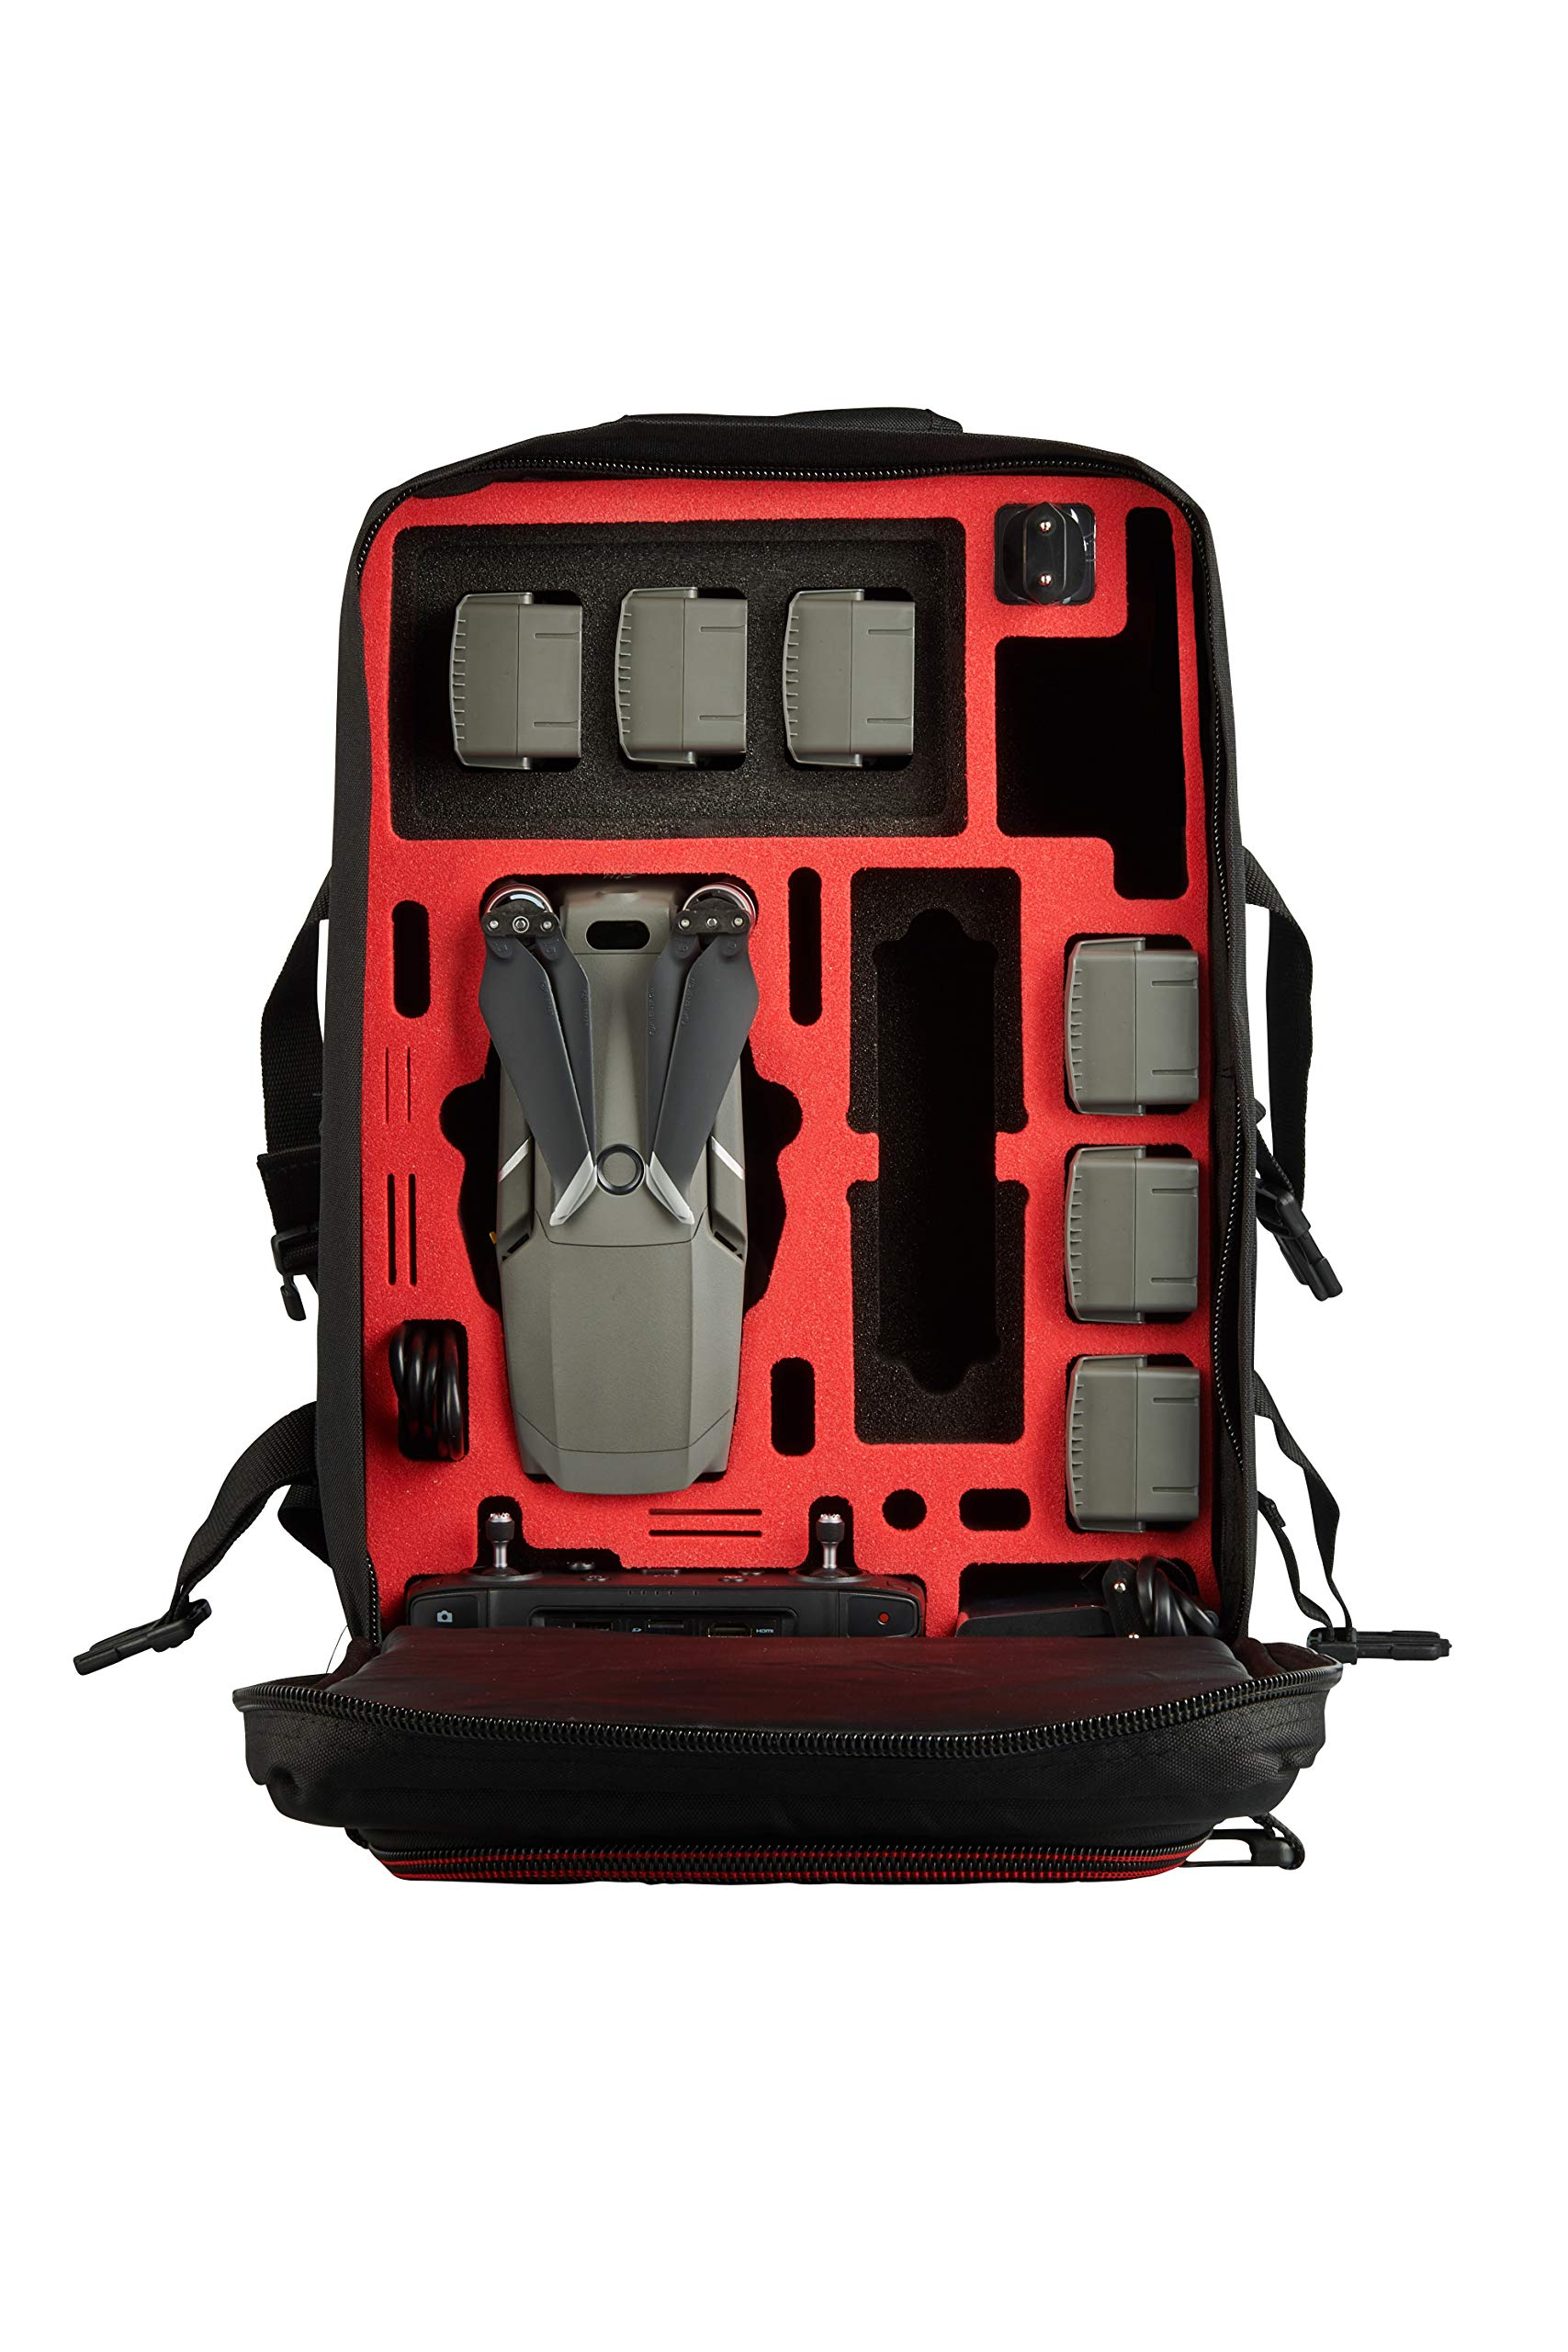 MC-CASES Backpack for DJI Mavic 2 Pro or Zoom/Enterprise - Standard & Smart Controller Extremely Comfortable - Lots of Space